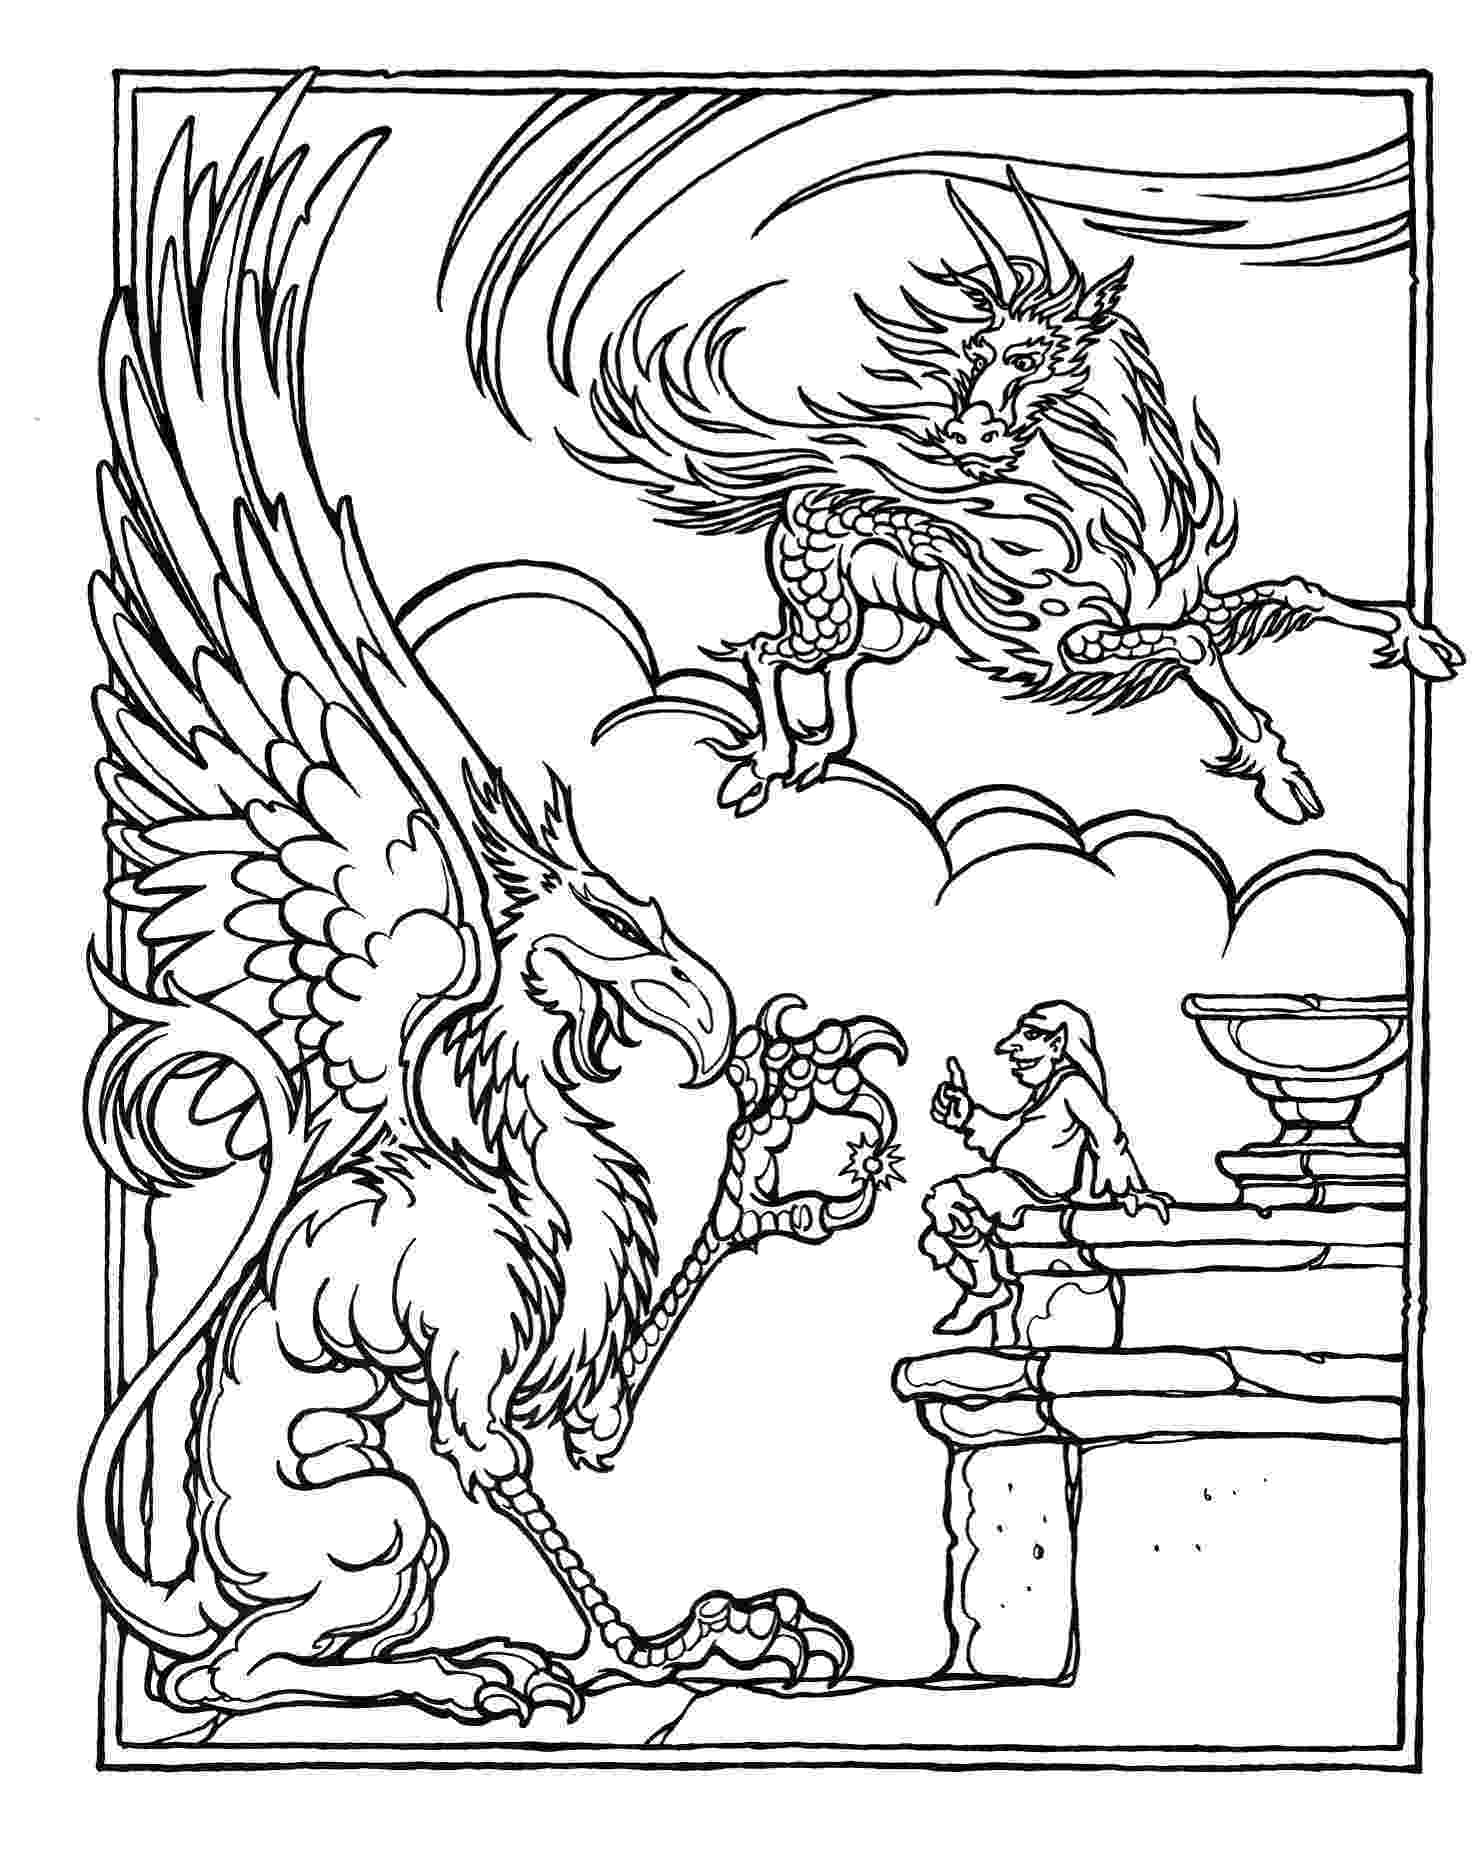 coloring page dragon dragon coloring pages for adults to download and print for page dragon coloring